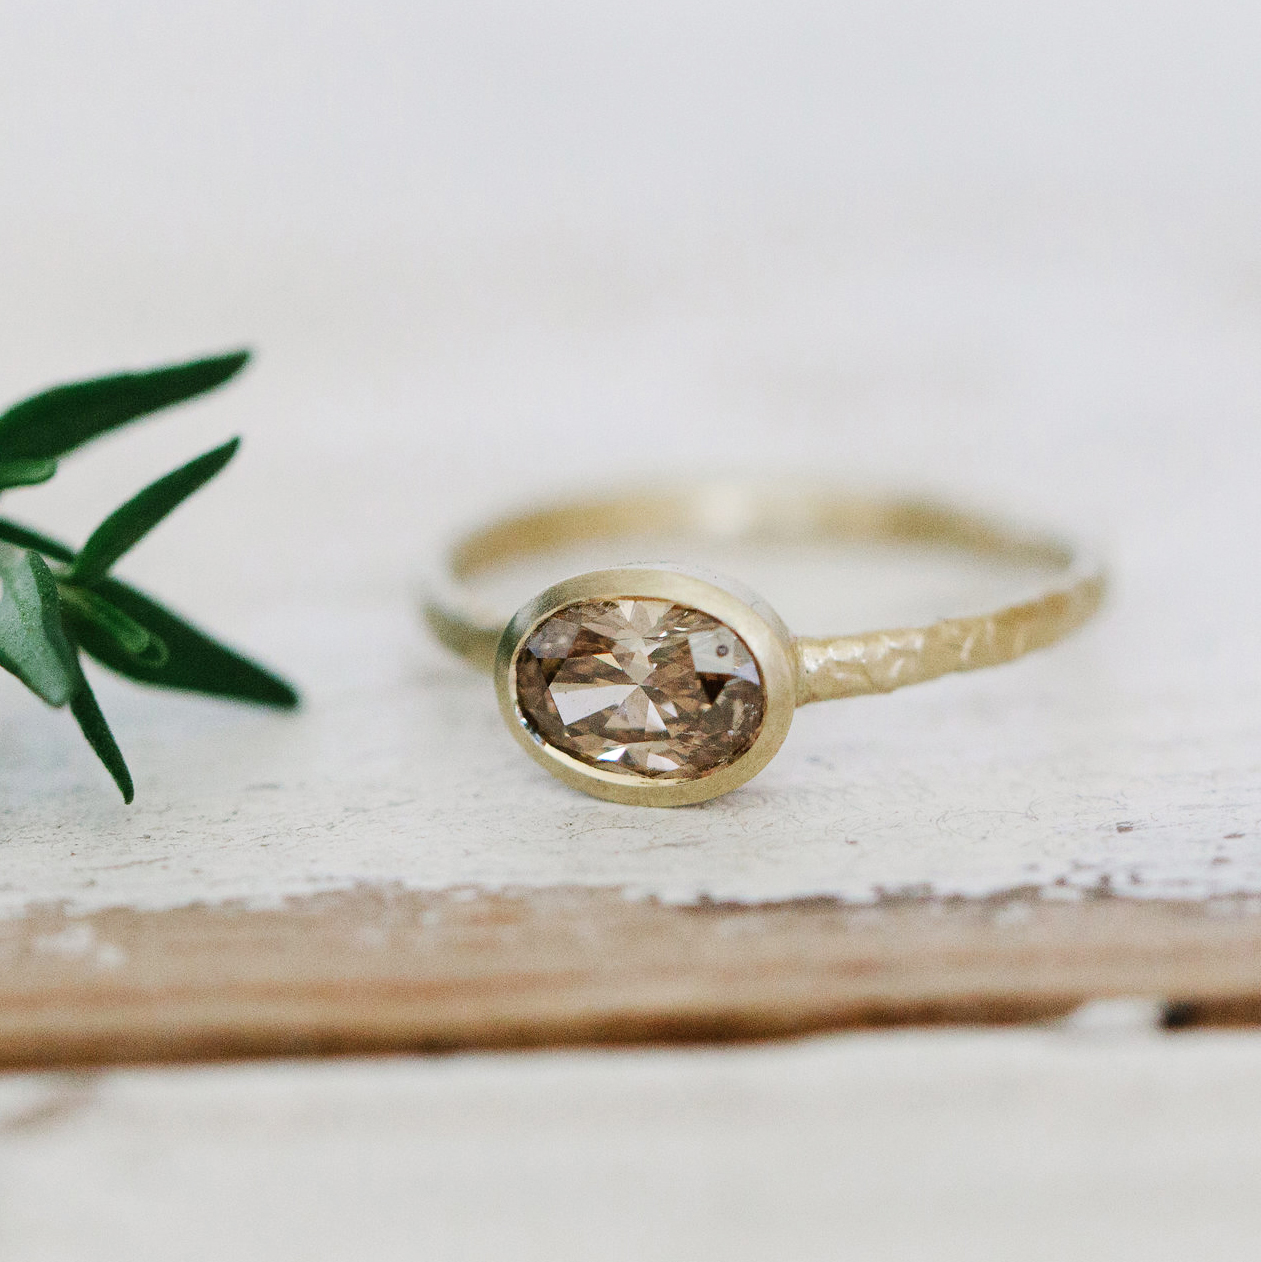 Catkin Oval Champagne Diamond Solitaire Ring Alison Macleod Jewellery